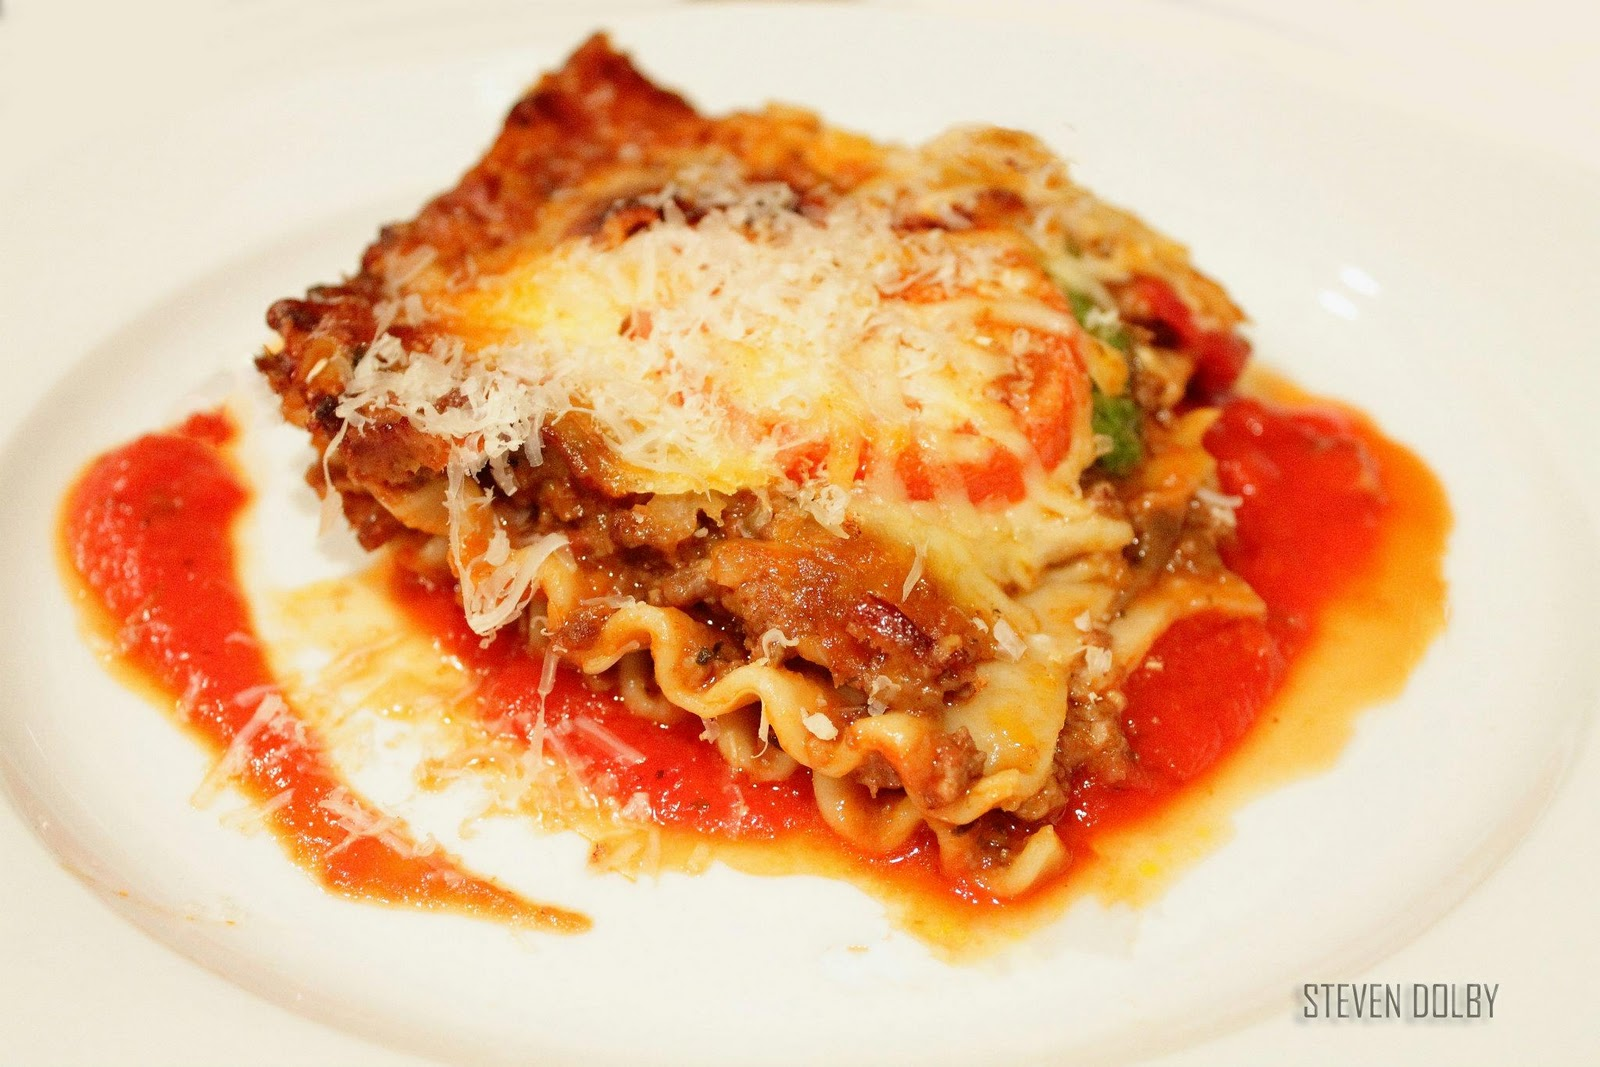 rustic lasagne alla bolognese by steven dolby